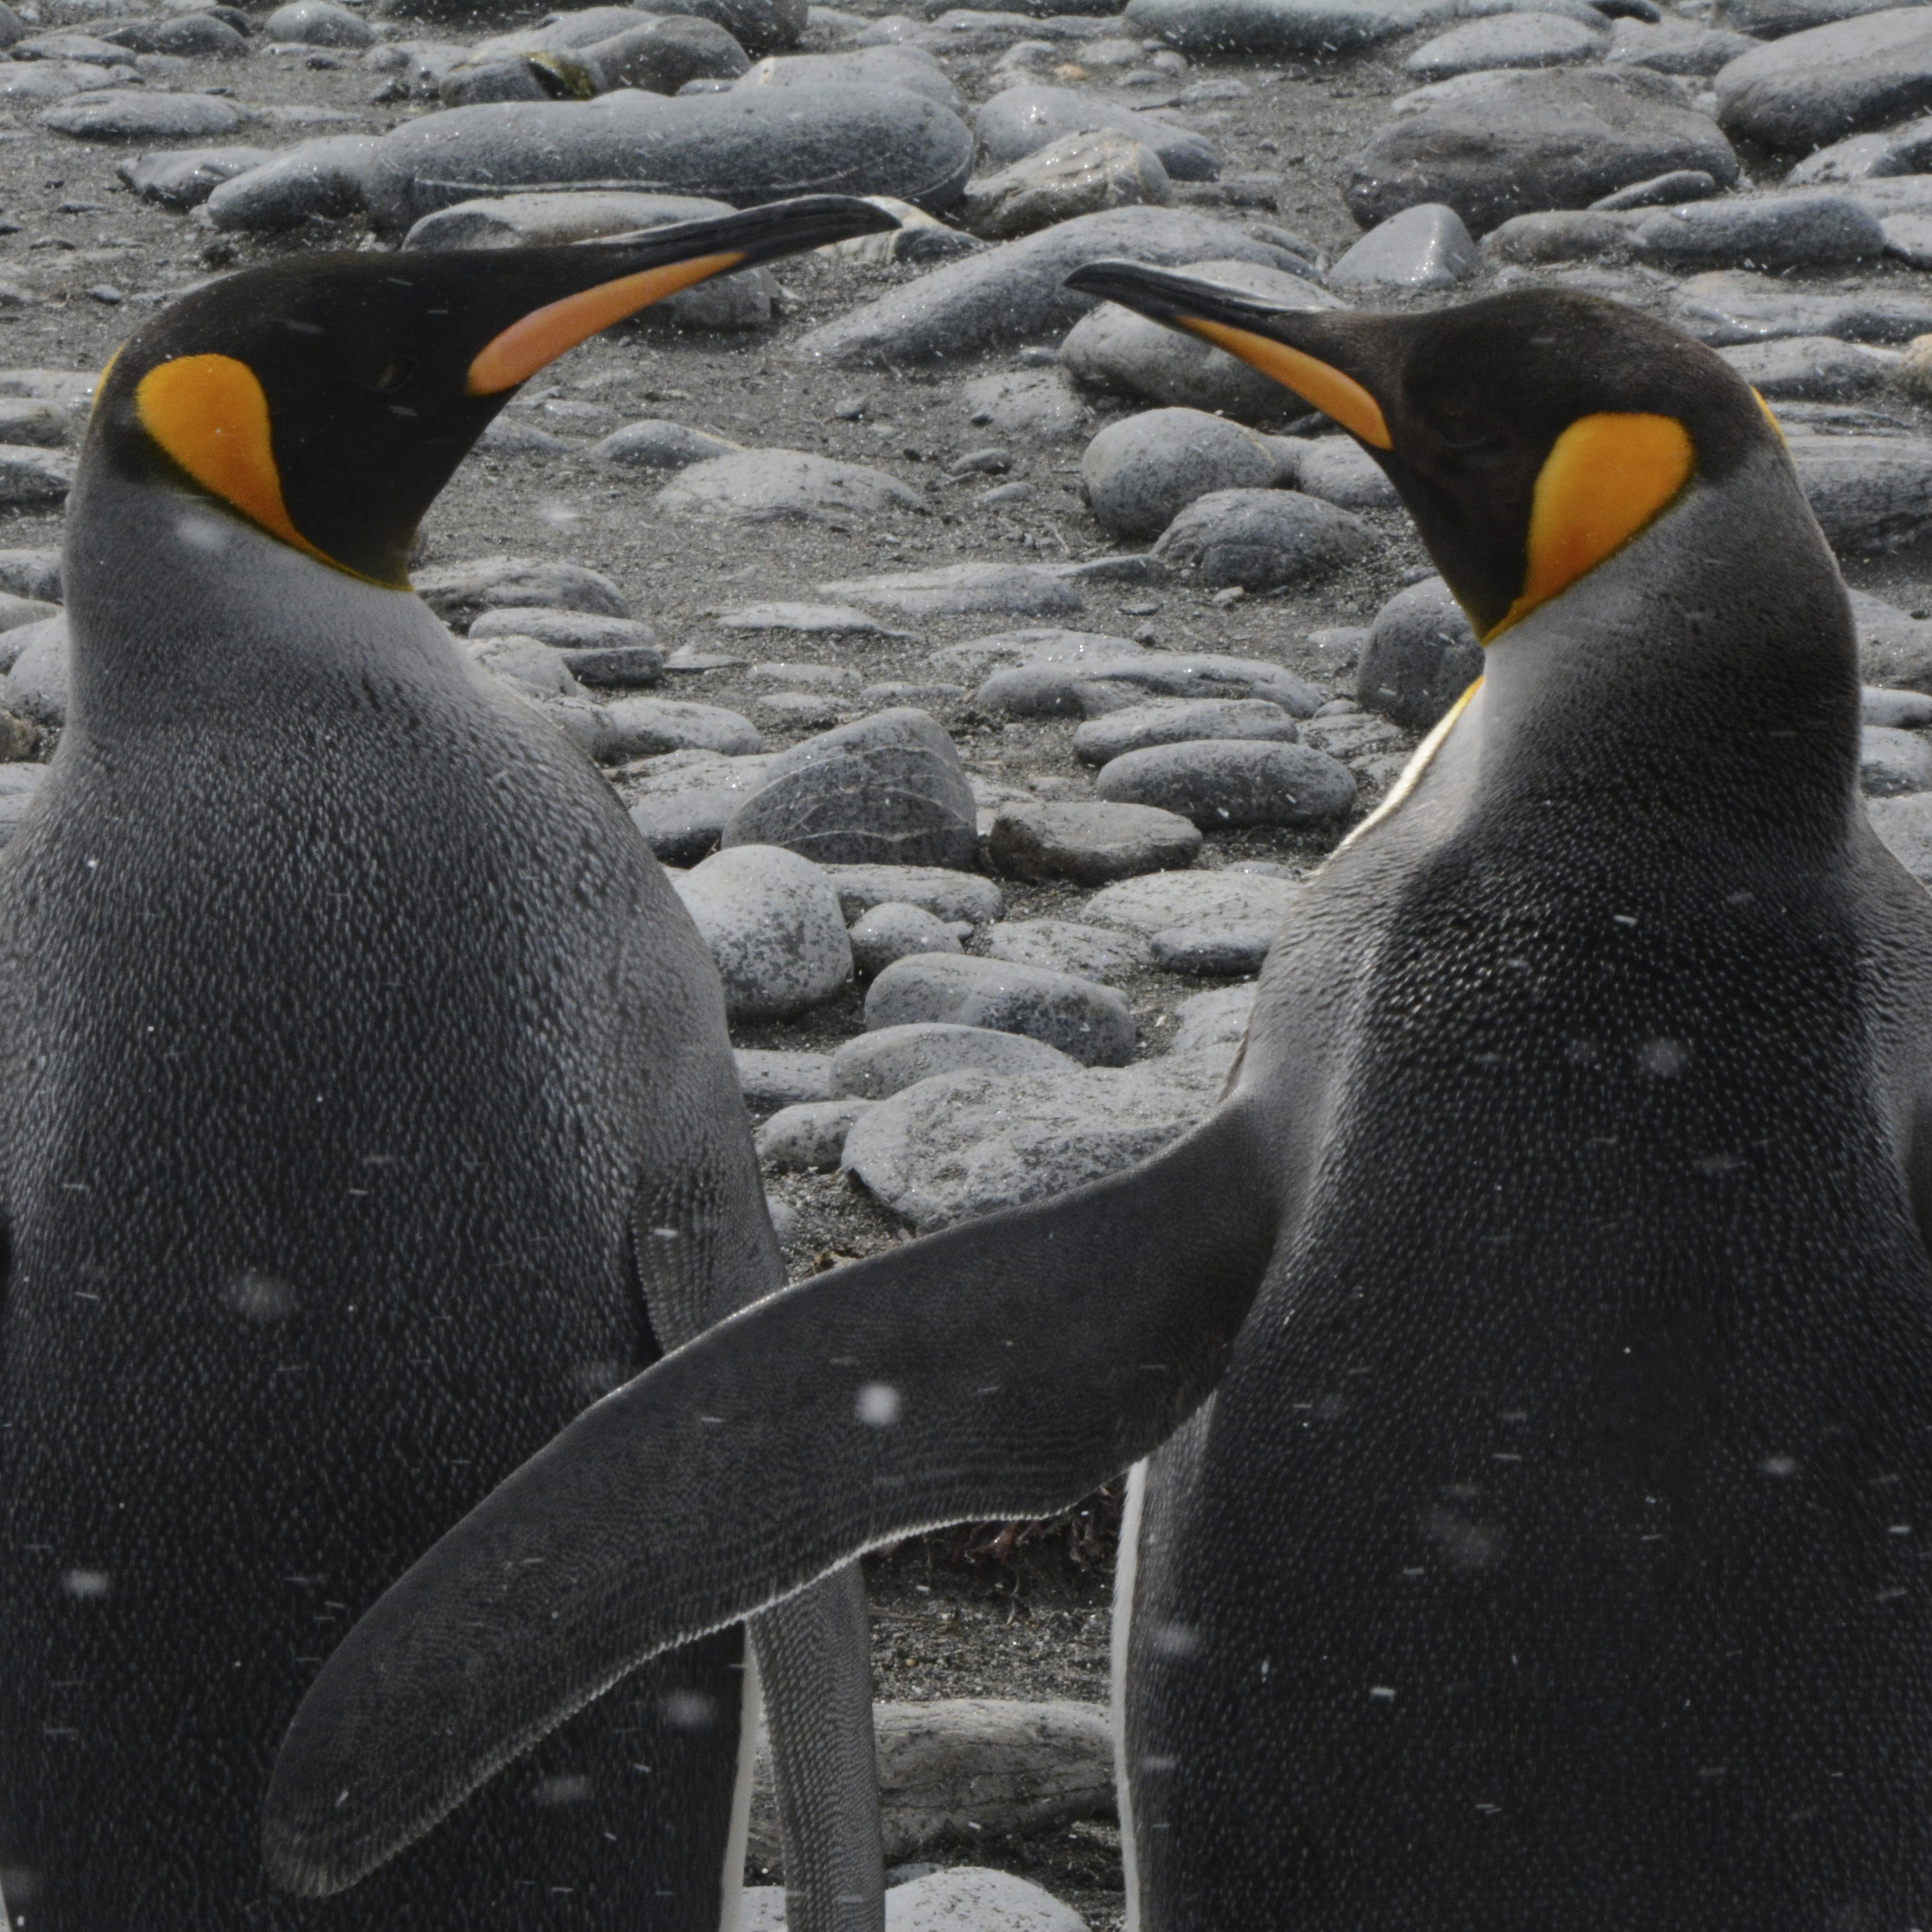 Two male King Penguins marking their territory at Salisbury Plains, South Georgia. https://www.gypsyat60.com